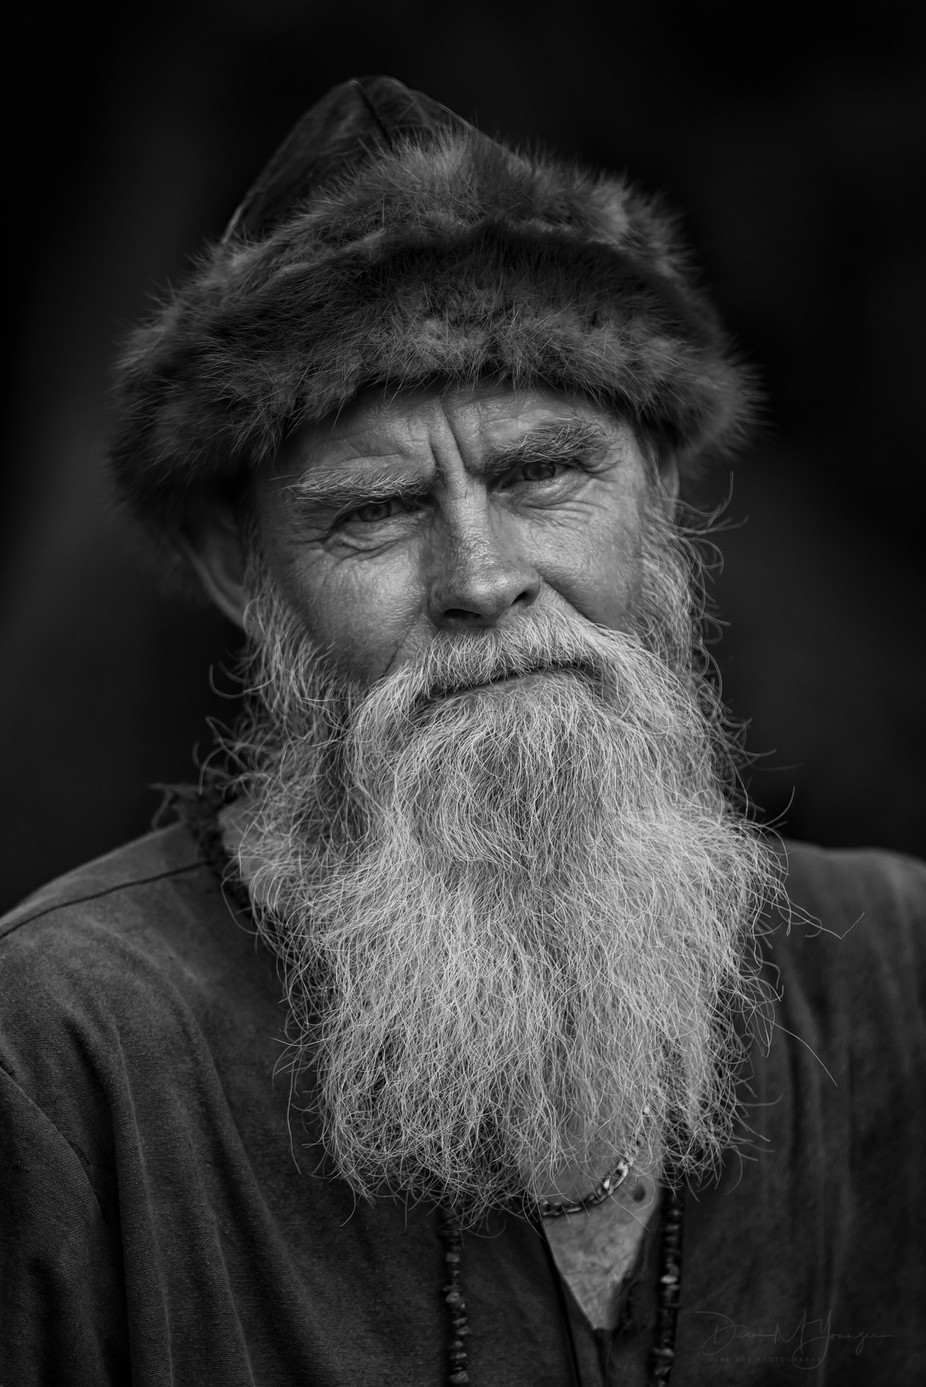 The Dane by DeanYounger - Beards and Mustaches Photo Contest